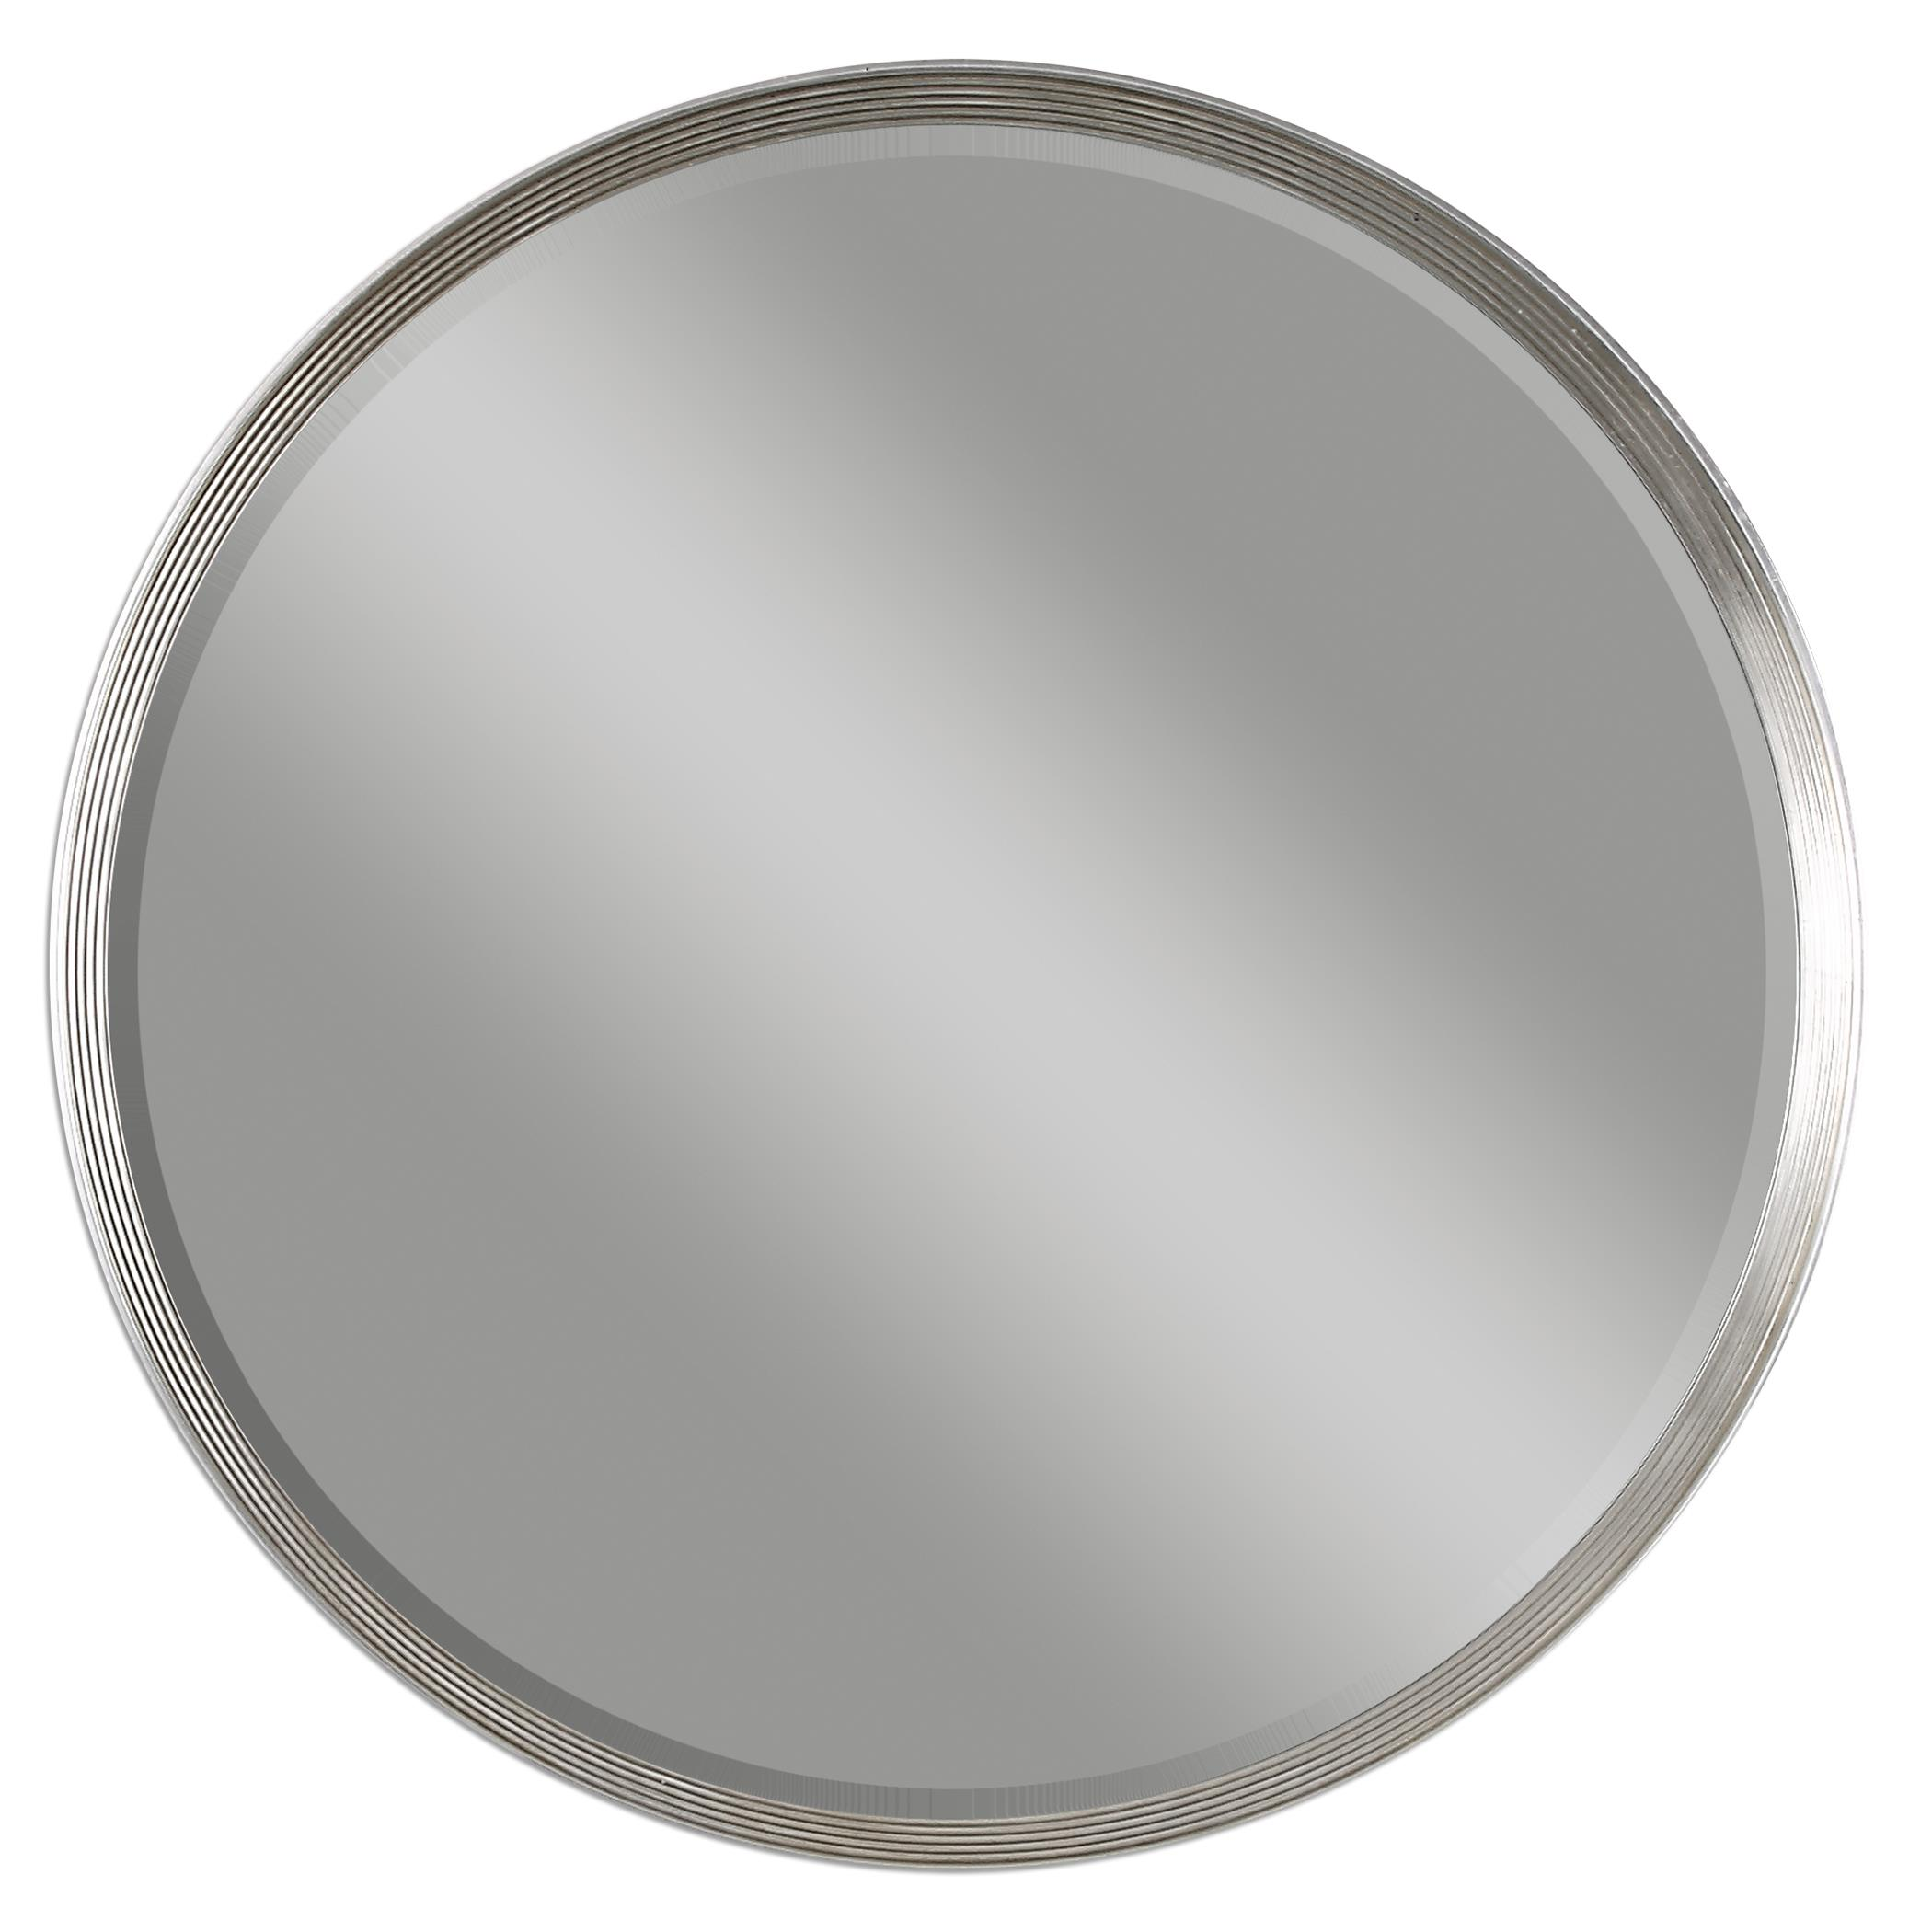 uttermost mirrors 14547 serenza round silver mirror del sol furniture wall mirrors. Black Bedroom Furniture Sets. Home Design Ideas